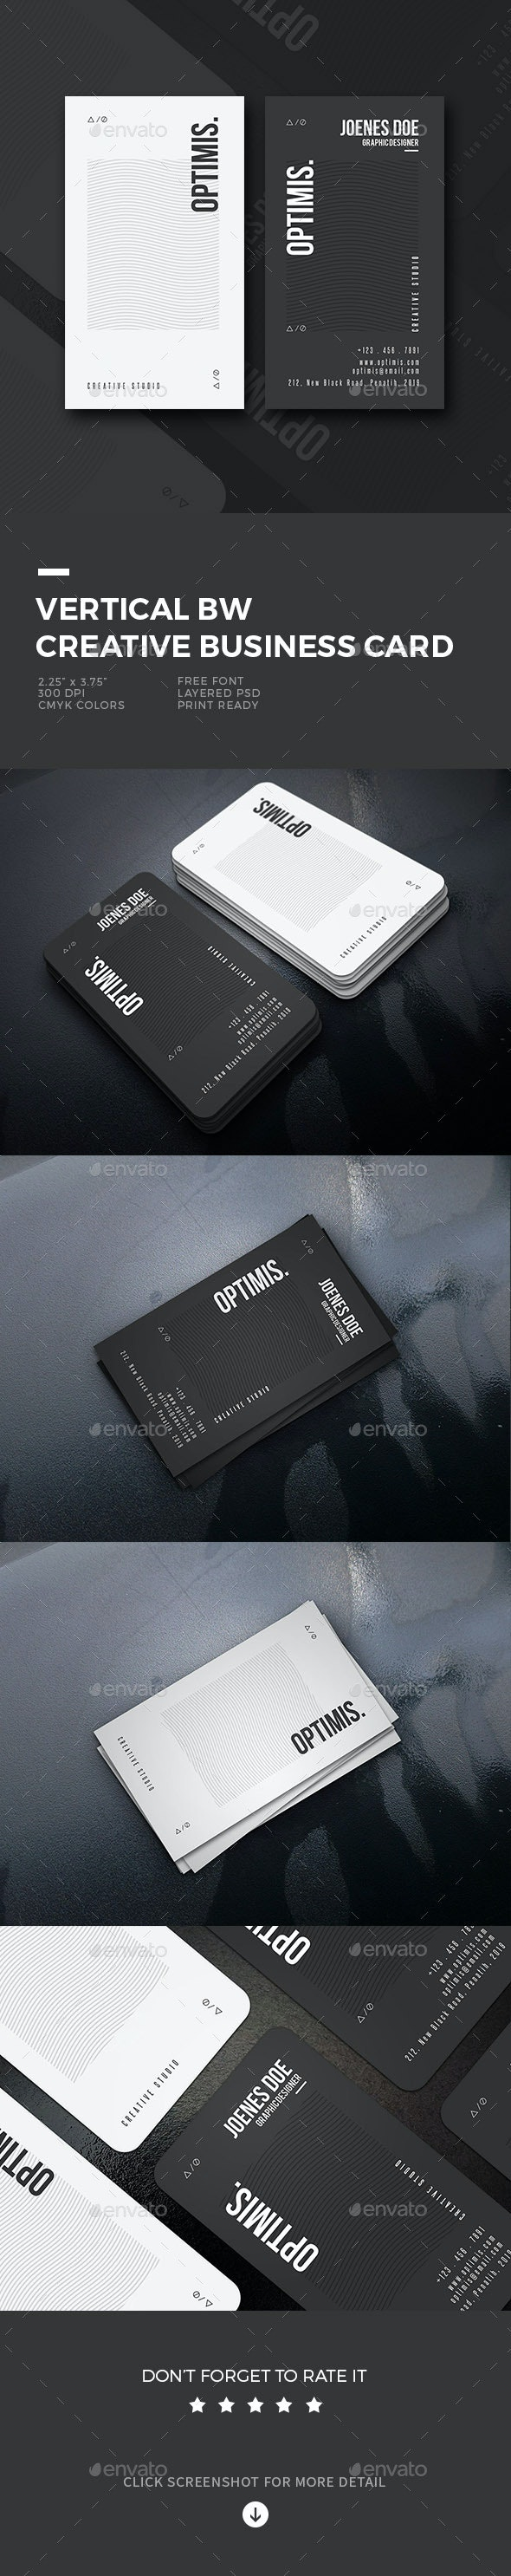 Vertical BW Creative Business Card - Business Cards Print Templates